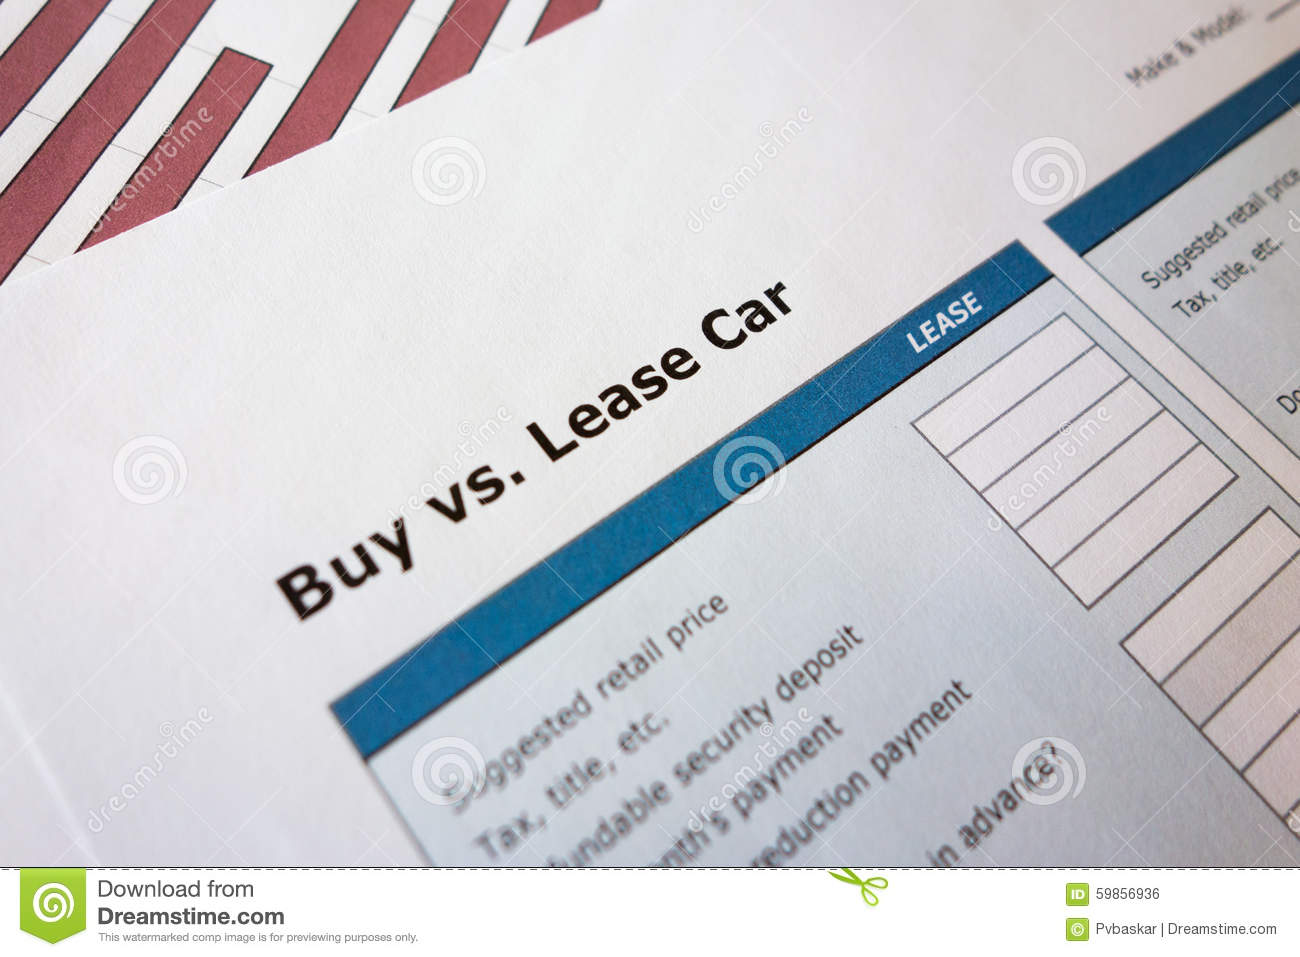 a comparison of leasing and buying When you buy commercial real estate you'll typically have to invest as much as  6x more in upfront costs when compared to leasing commercial.